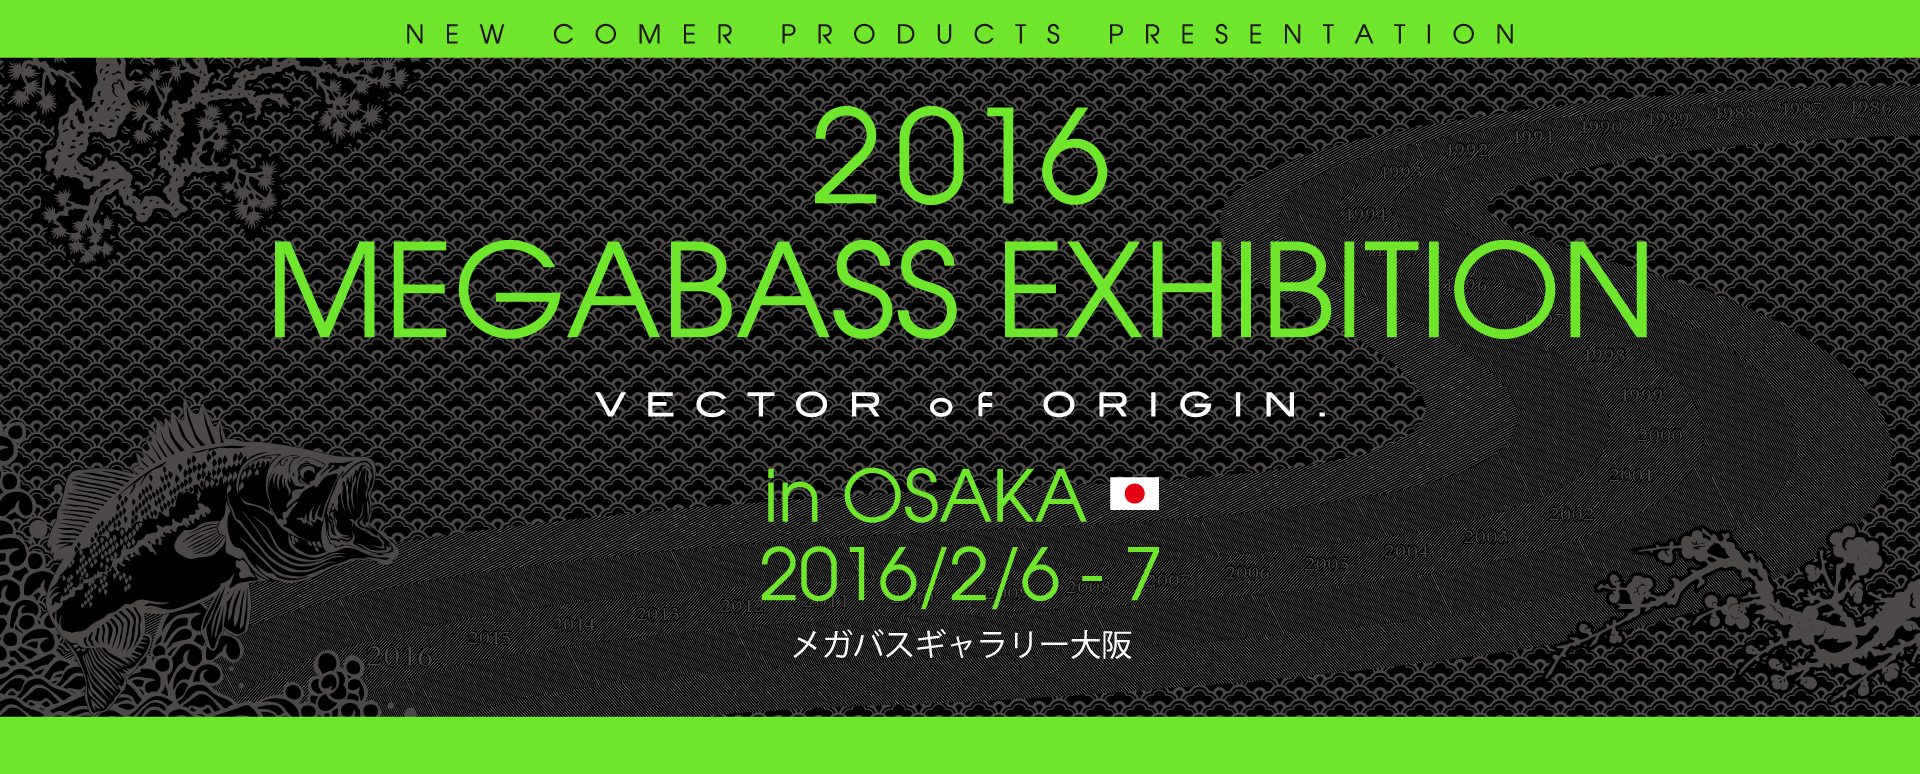 """MEGABASS EXHIBITION in OSAKA"" SPECIAL THANKS!!"